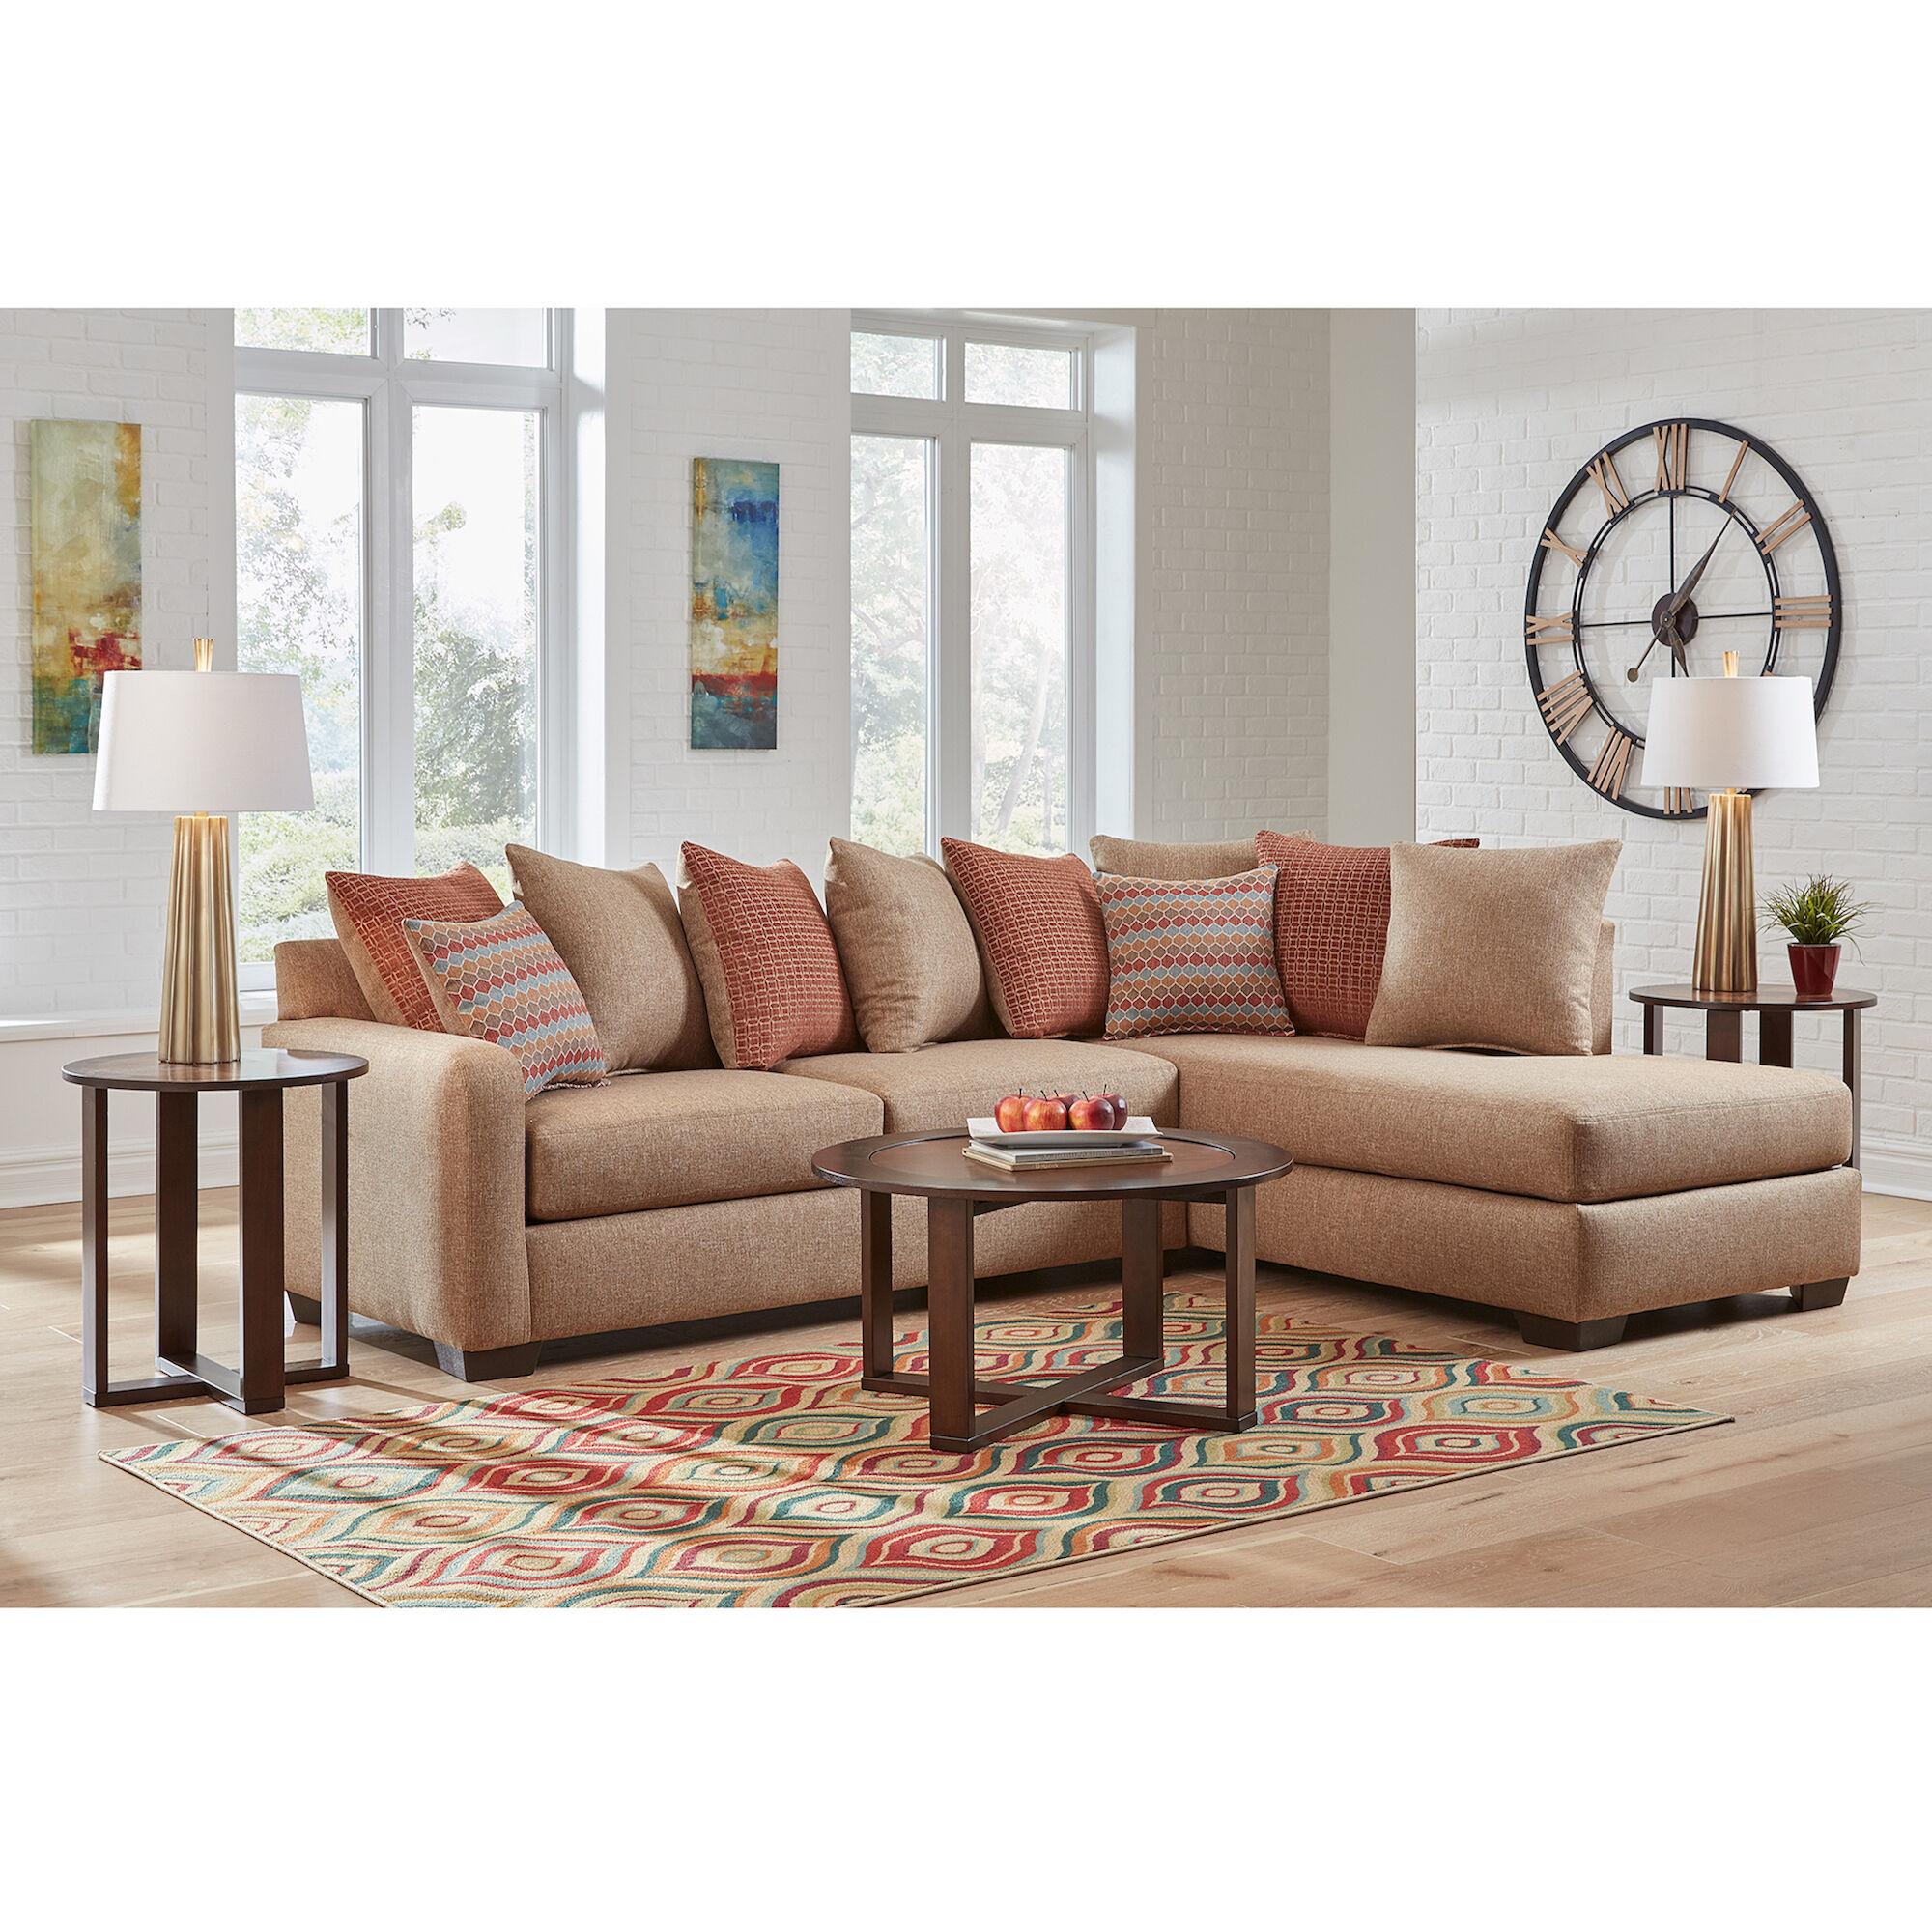 Superbe 7 Piece Casablanca Living Room Collection